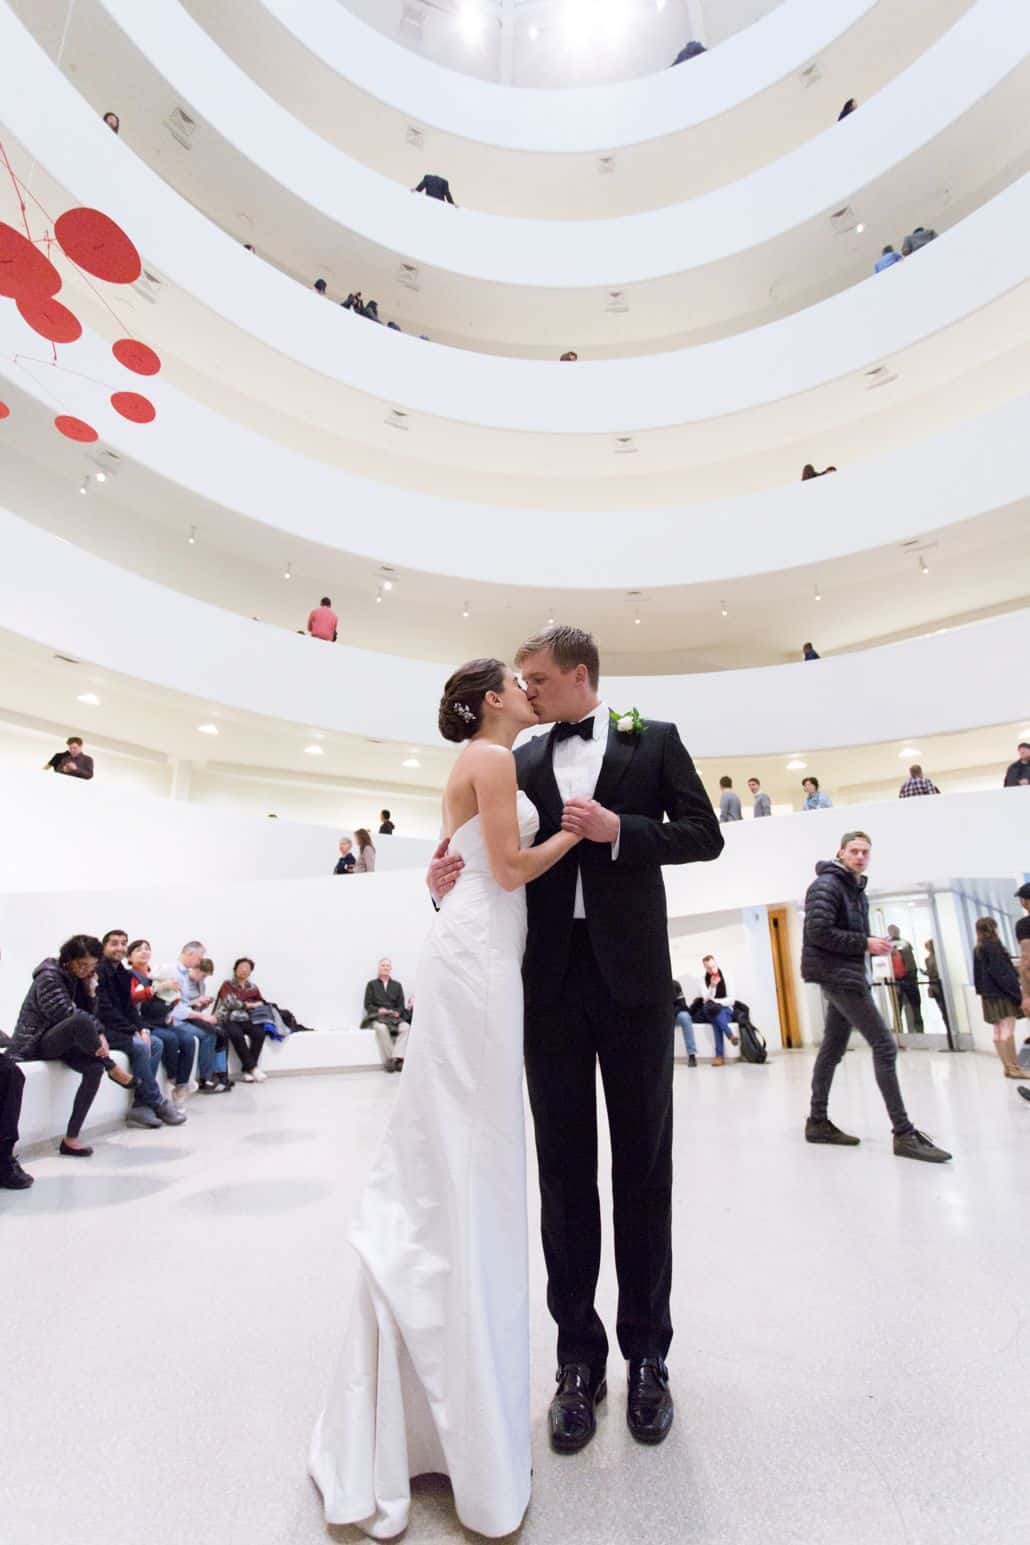 Bride and Groom kiss in middle of Guggenheim where they had their first date. Veka Bridal wedding dress. Black tux. New York wedding photographer. Guggenheim NYC wedding